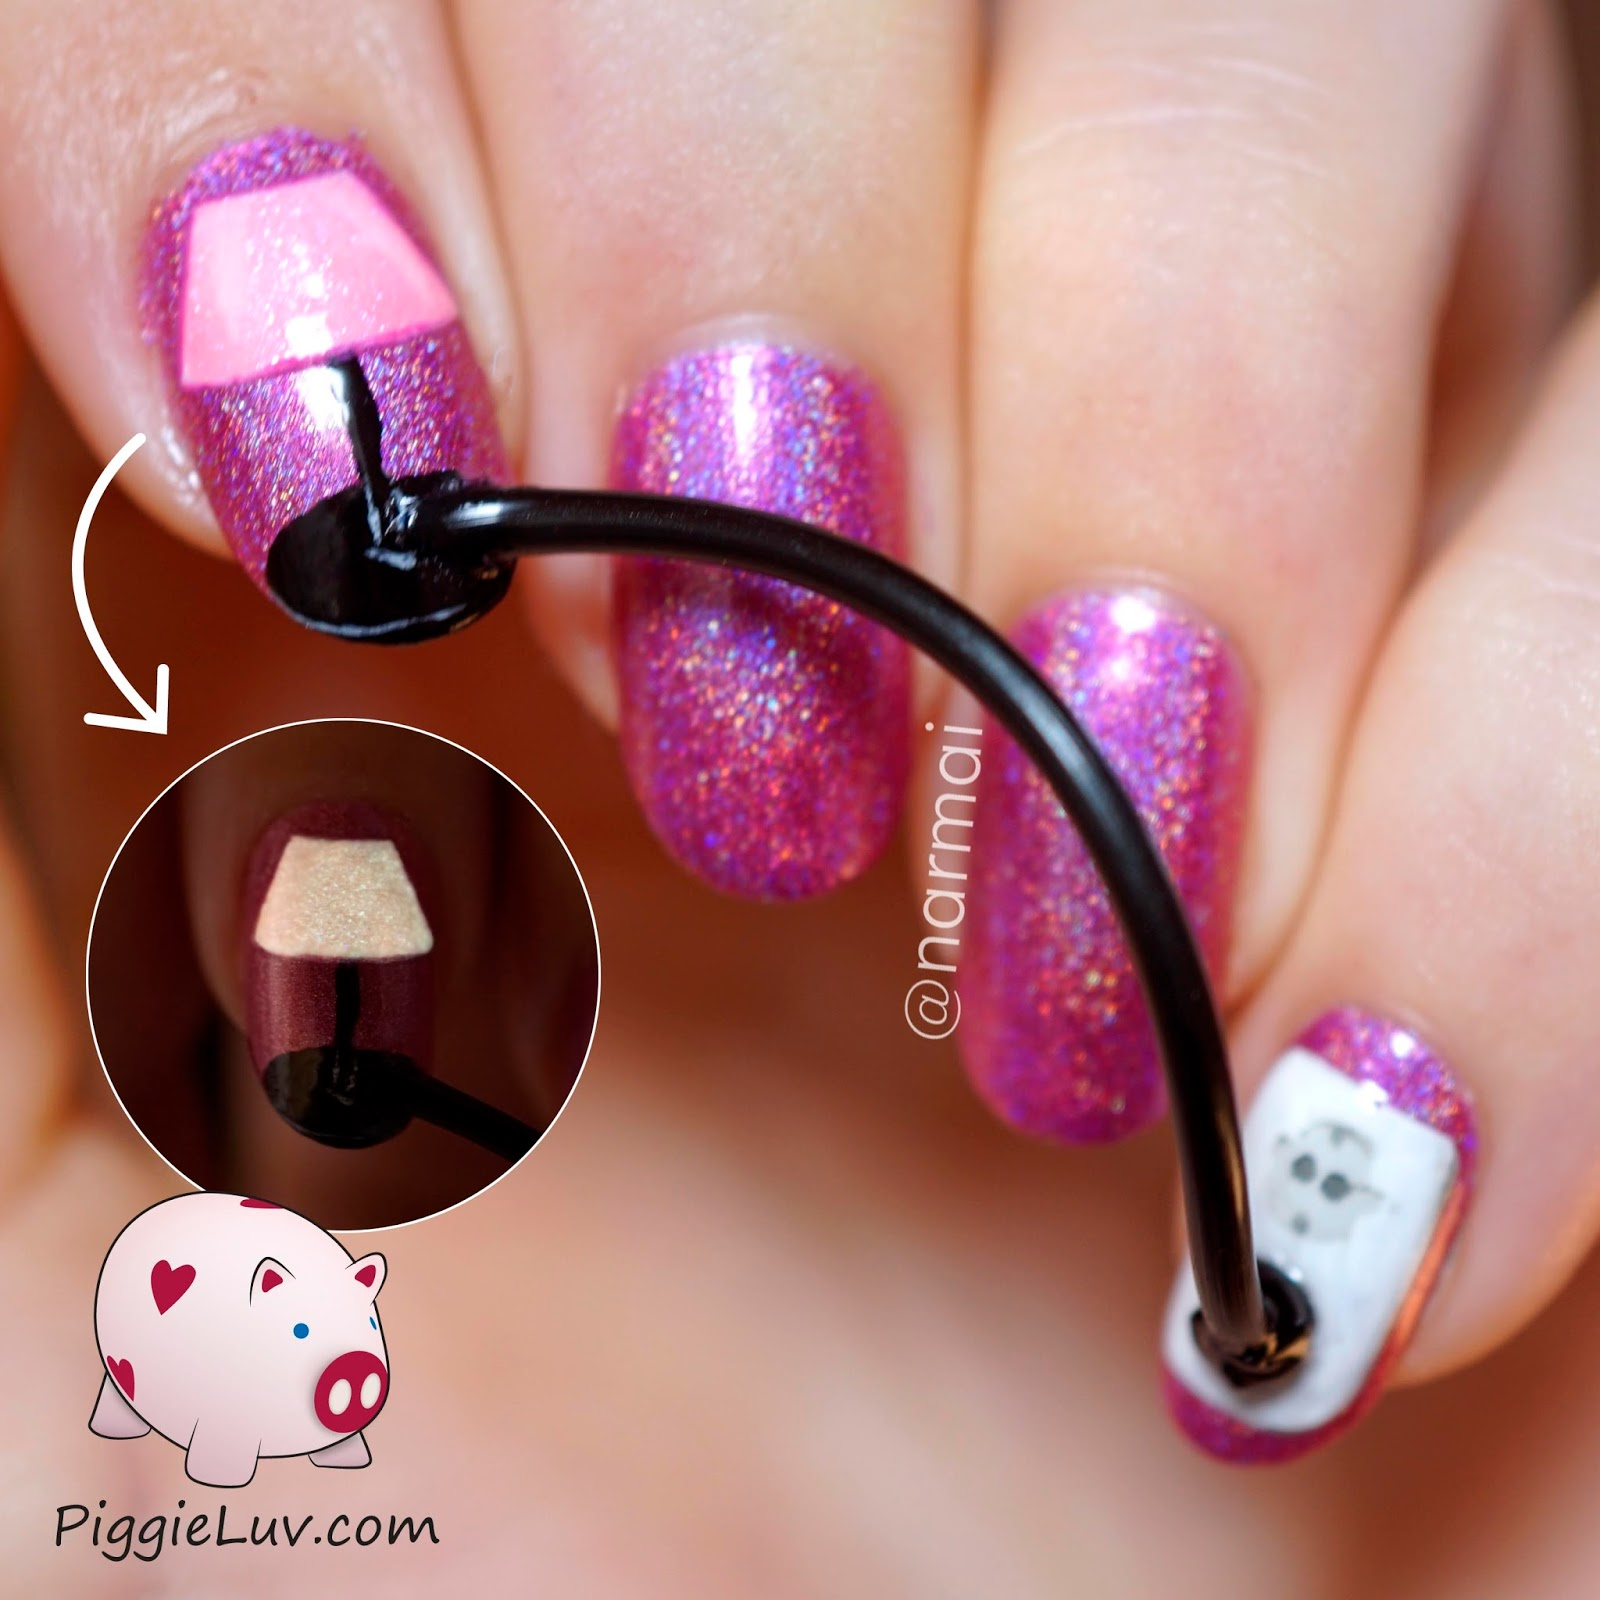 Piggieluv plugged in nail art this is the most annoying nail art ive ever done it was so inconvenient having two nails essentially on a leash obviously its not for actual wear prinsesfo Images